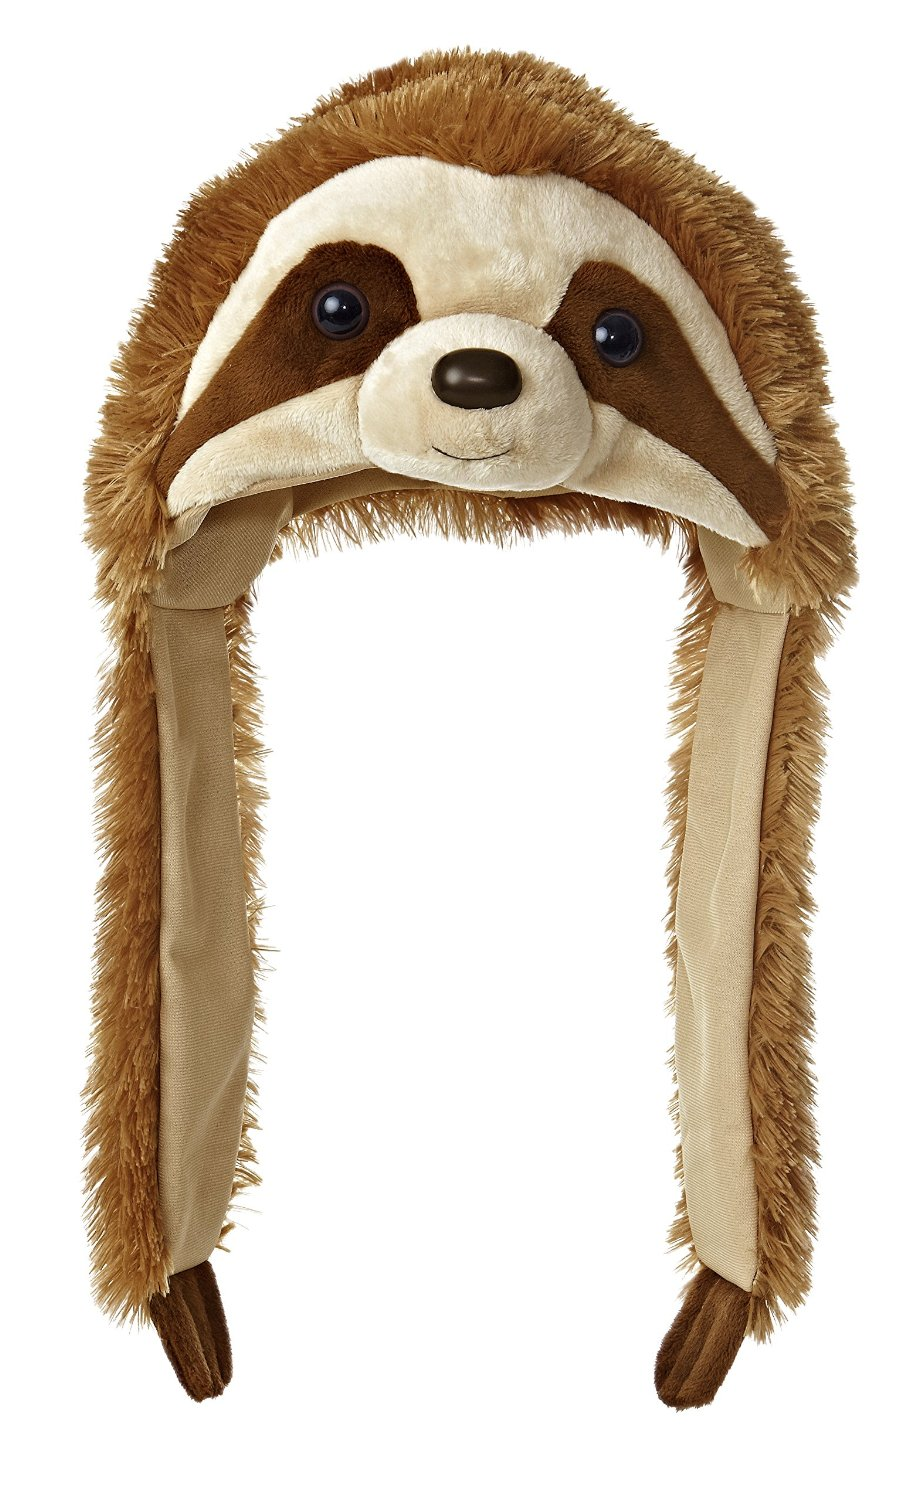 The Sloth Gift Guide 2014 Sloths Com Au